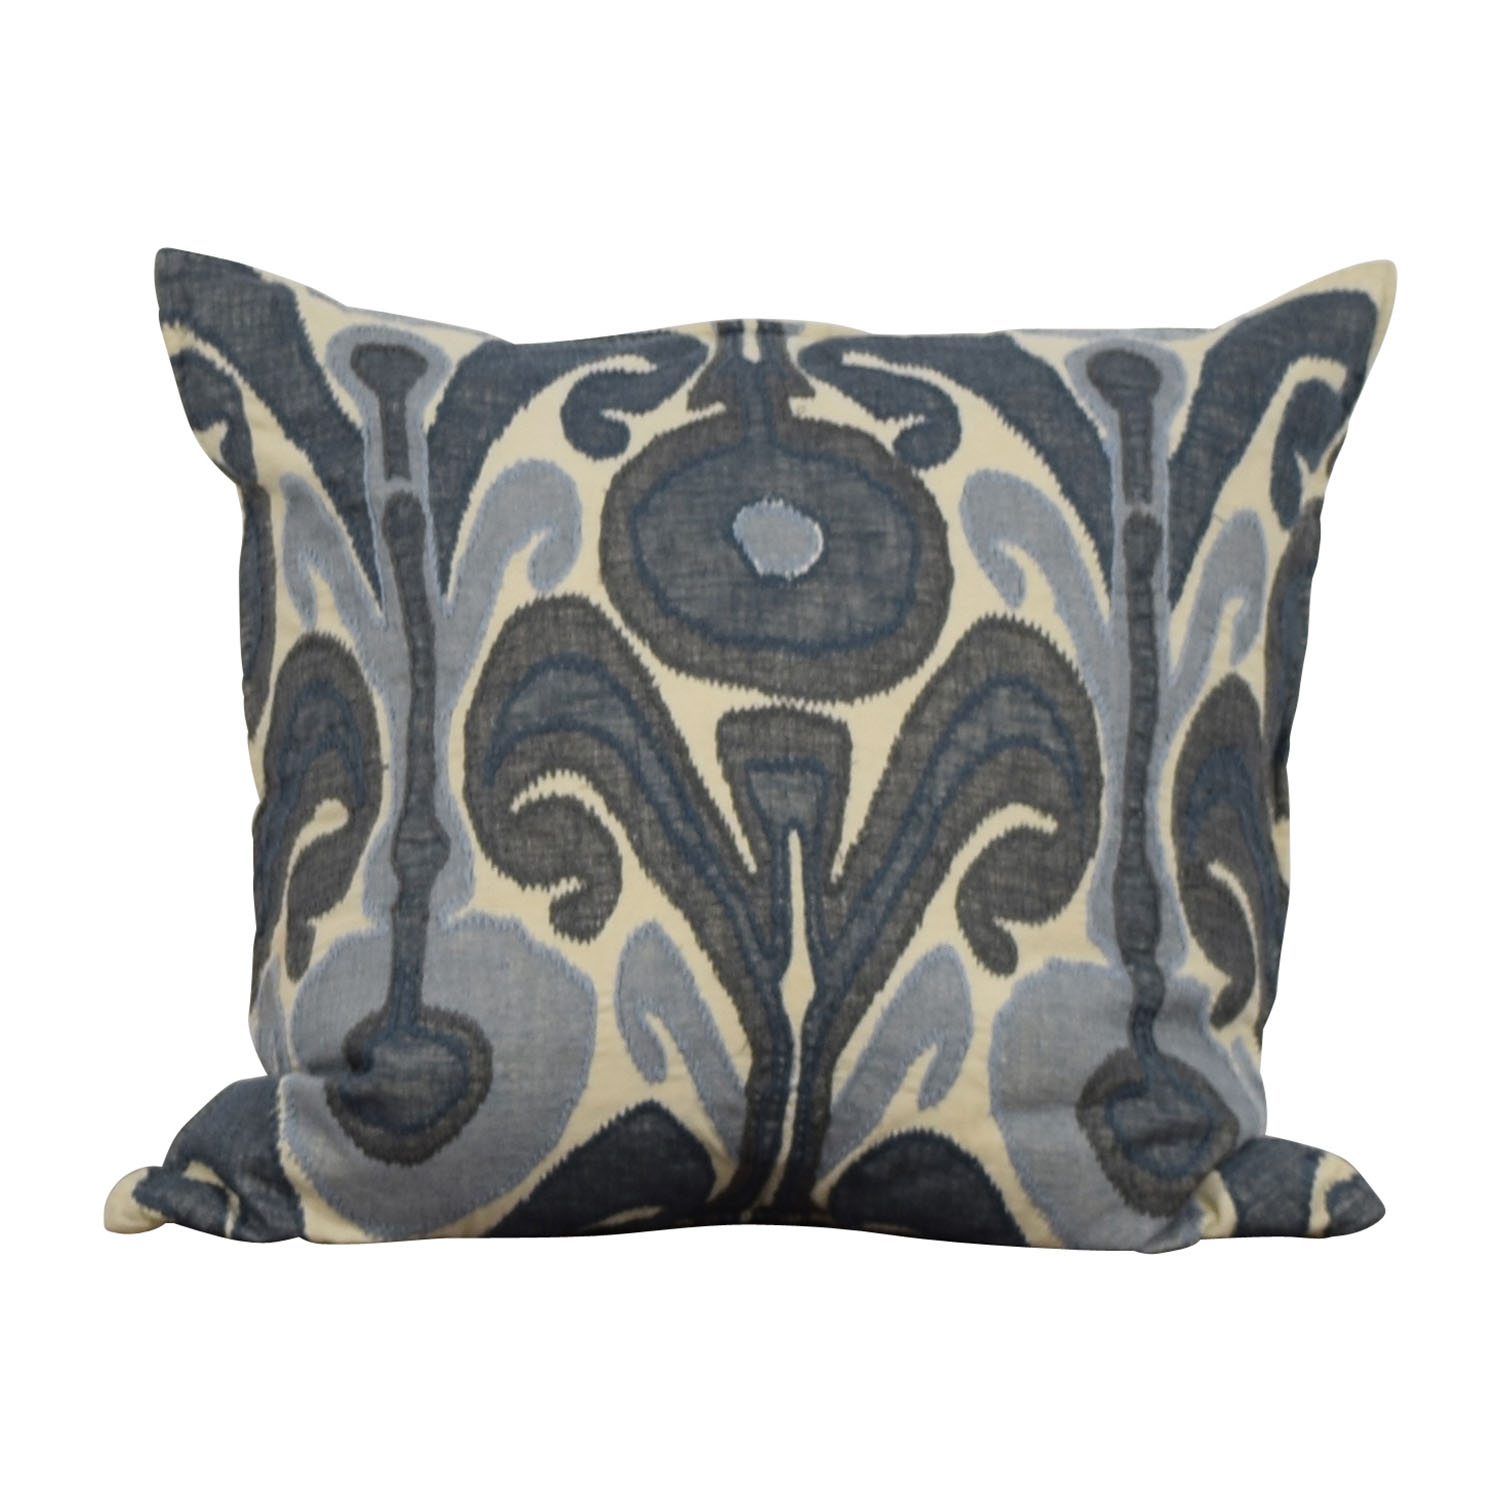 Light Blue and Navy Decorative Pillow / Decorative Accents